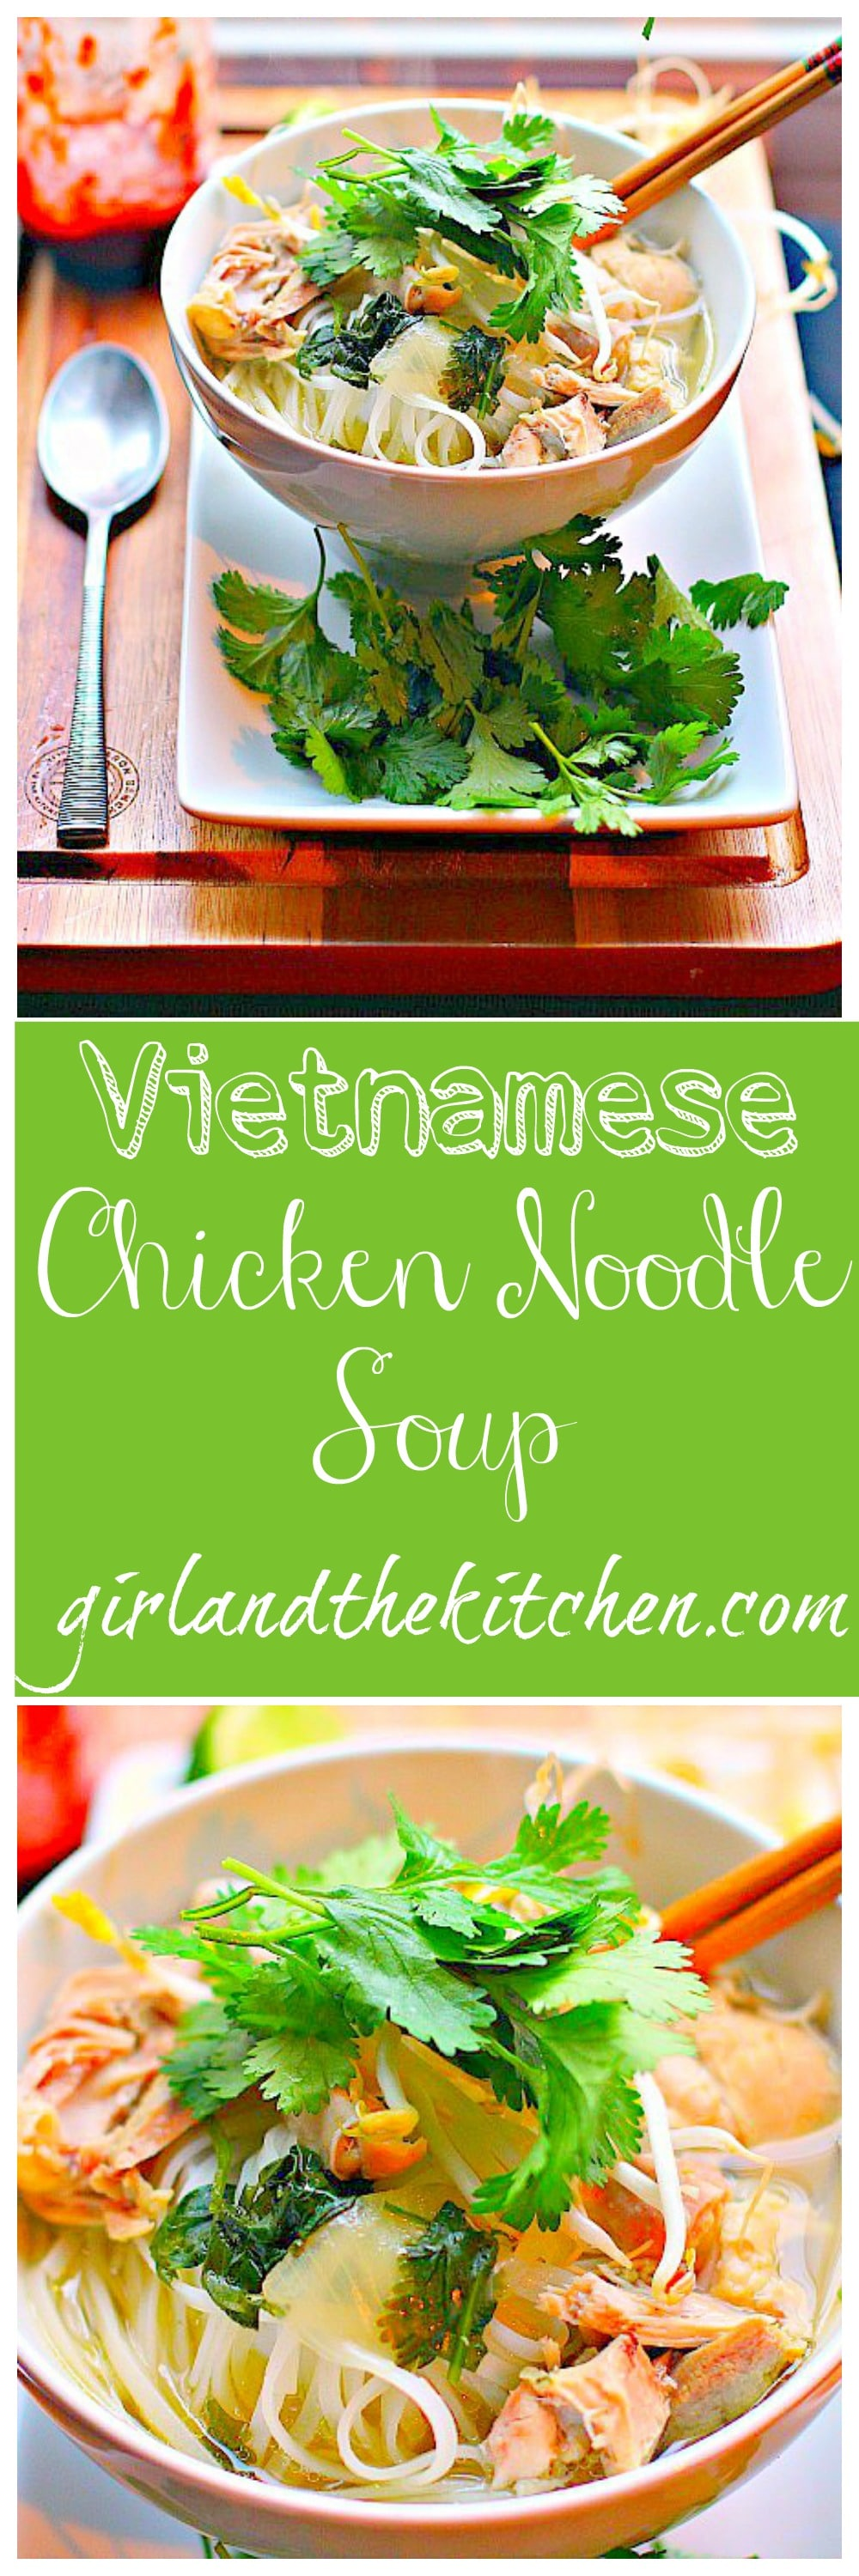 Vietnamese Chicken Noodle Soup .Collage